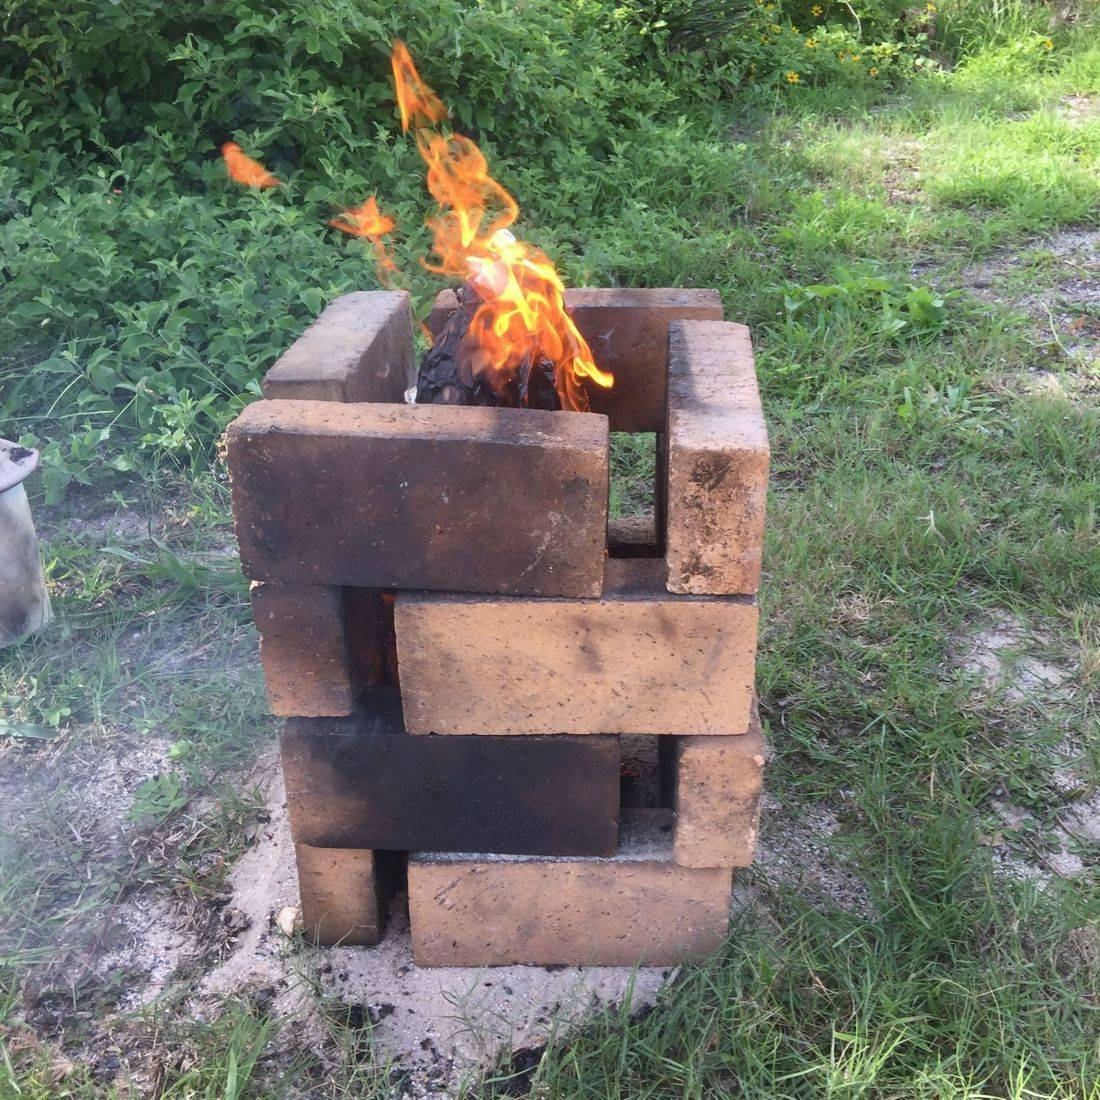 The temporary kiln for the smudge firing can be constructed as wished to contain the piece and allow air vents for irregular flame combustion